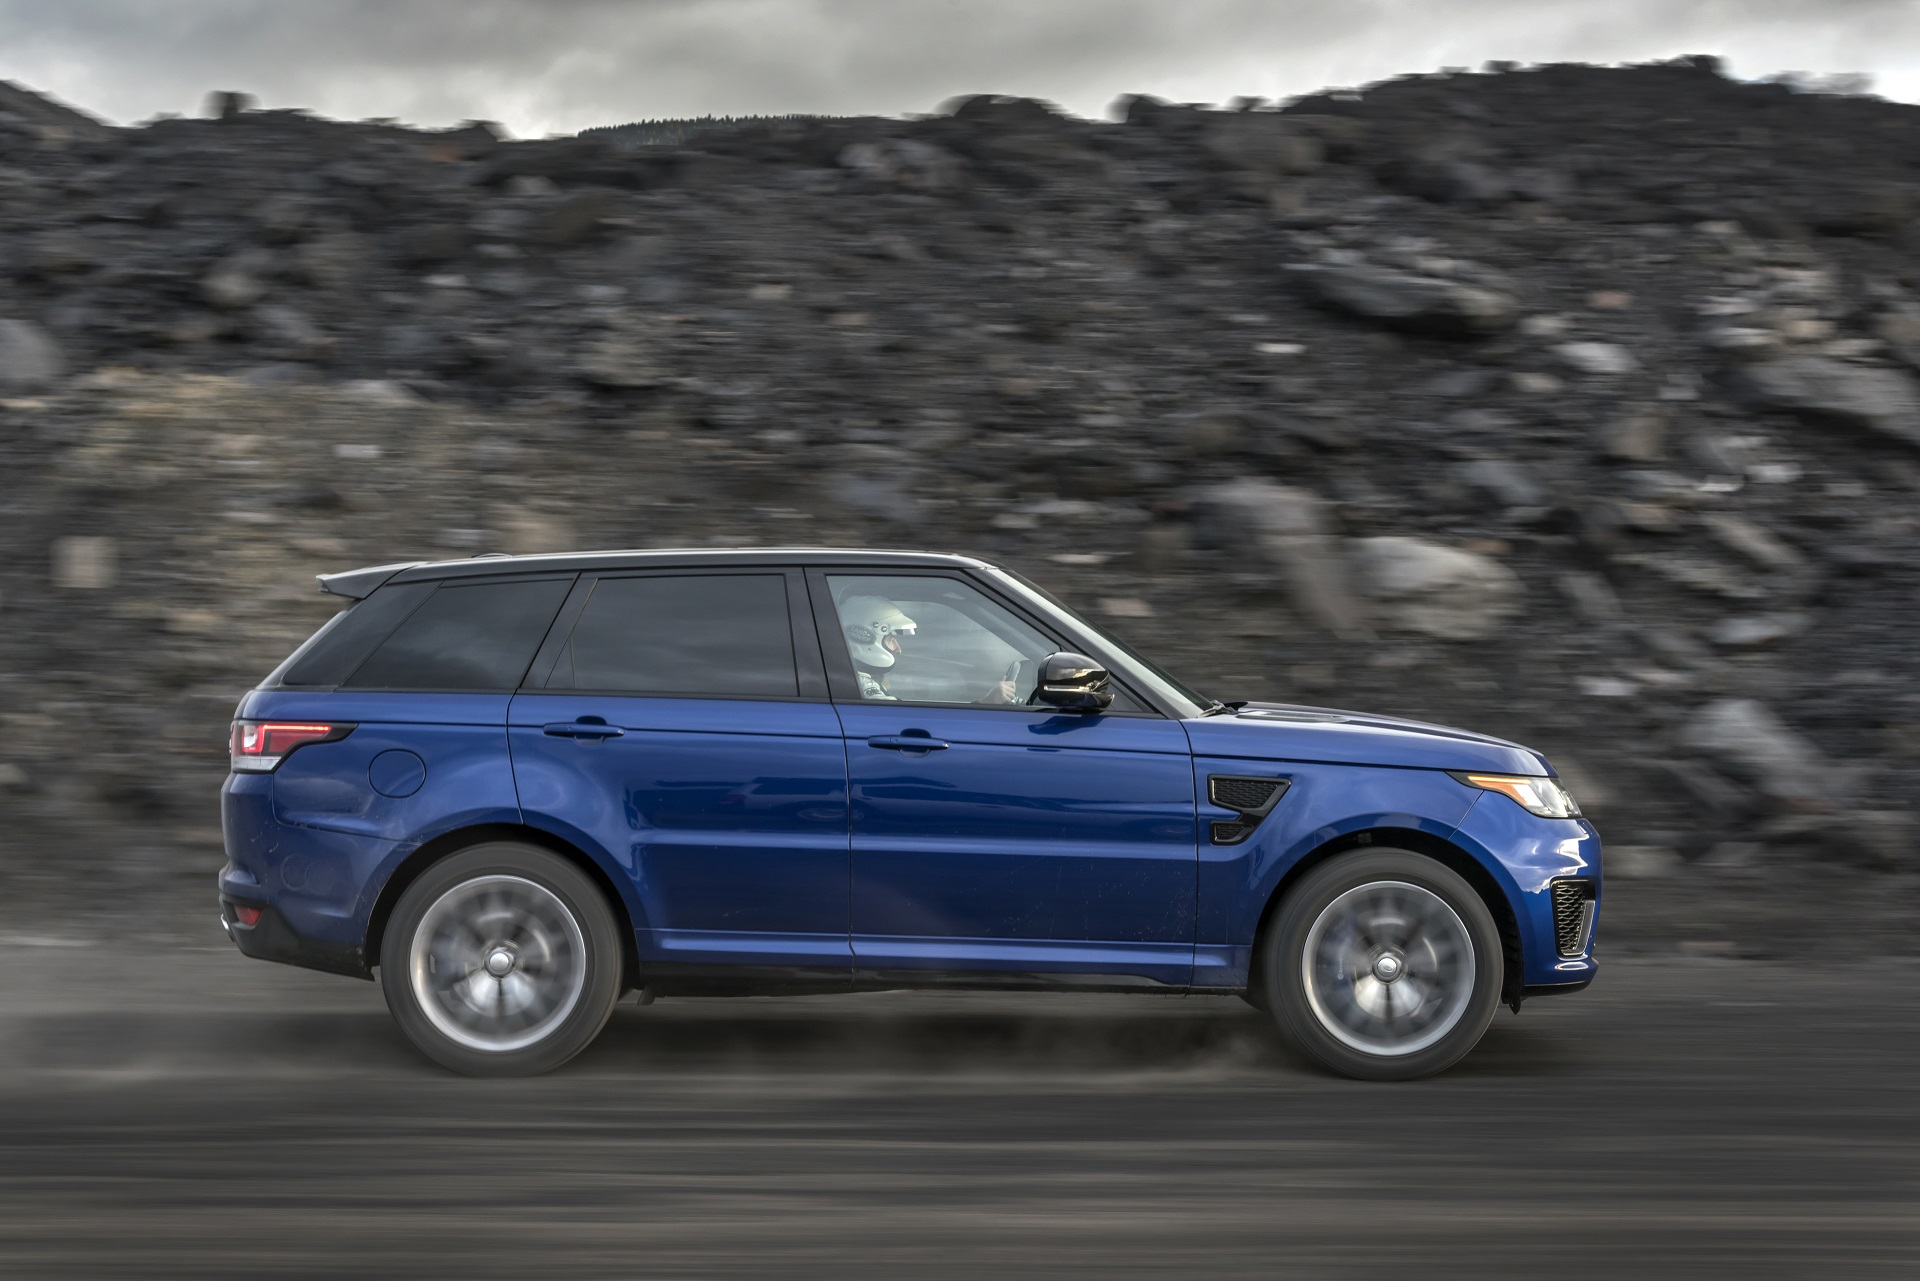 Land Rover conducts all terrain 0 60 mph testing with the Range